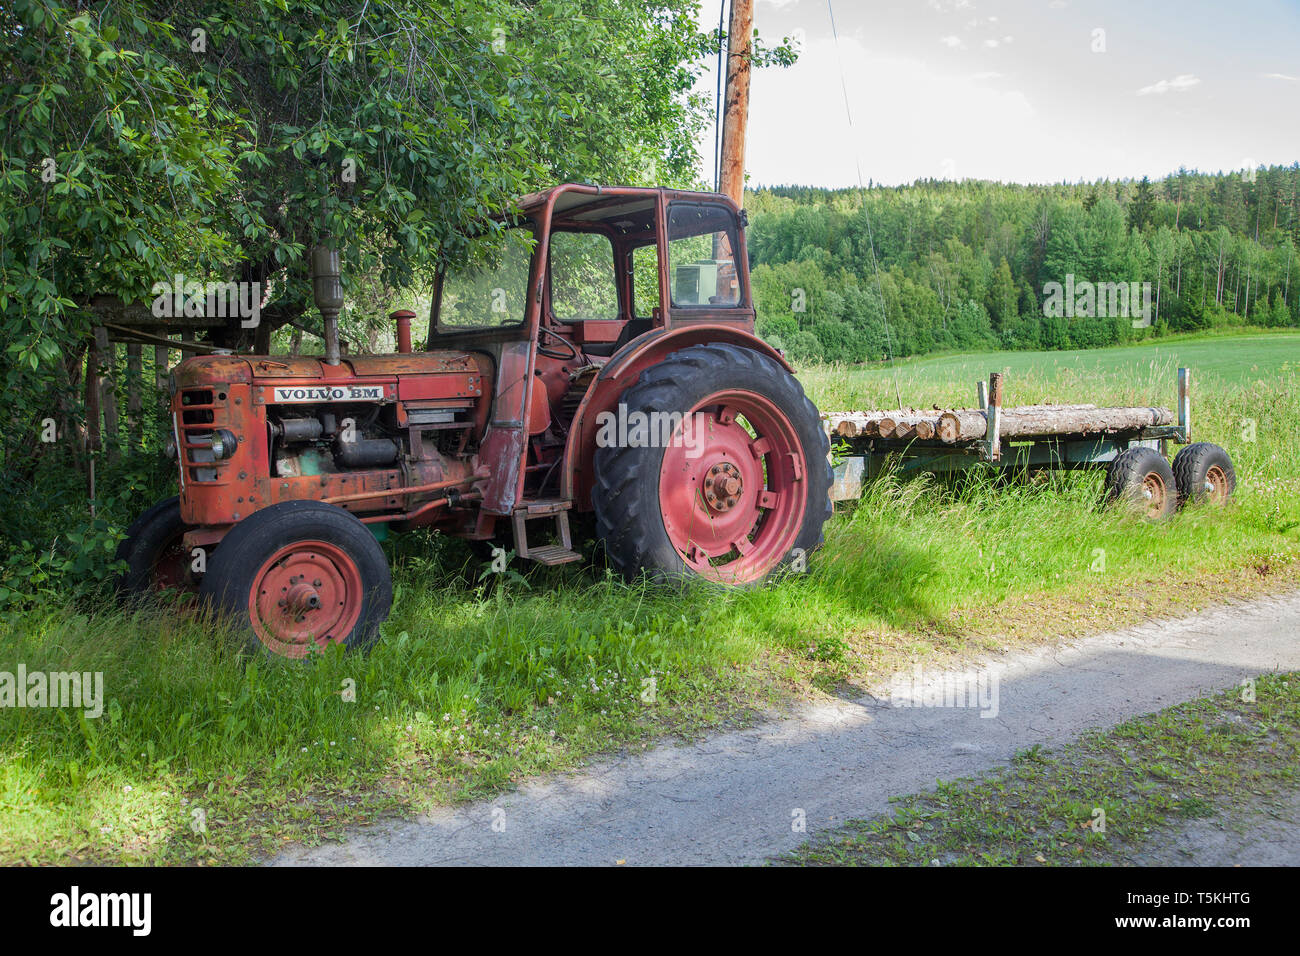 VOLVO BM tractor left beside the road - Stock Image